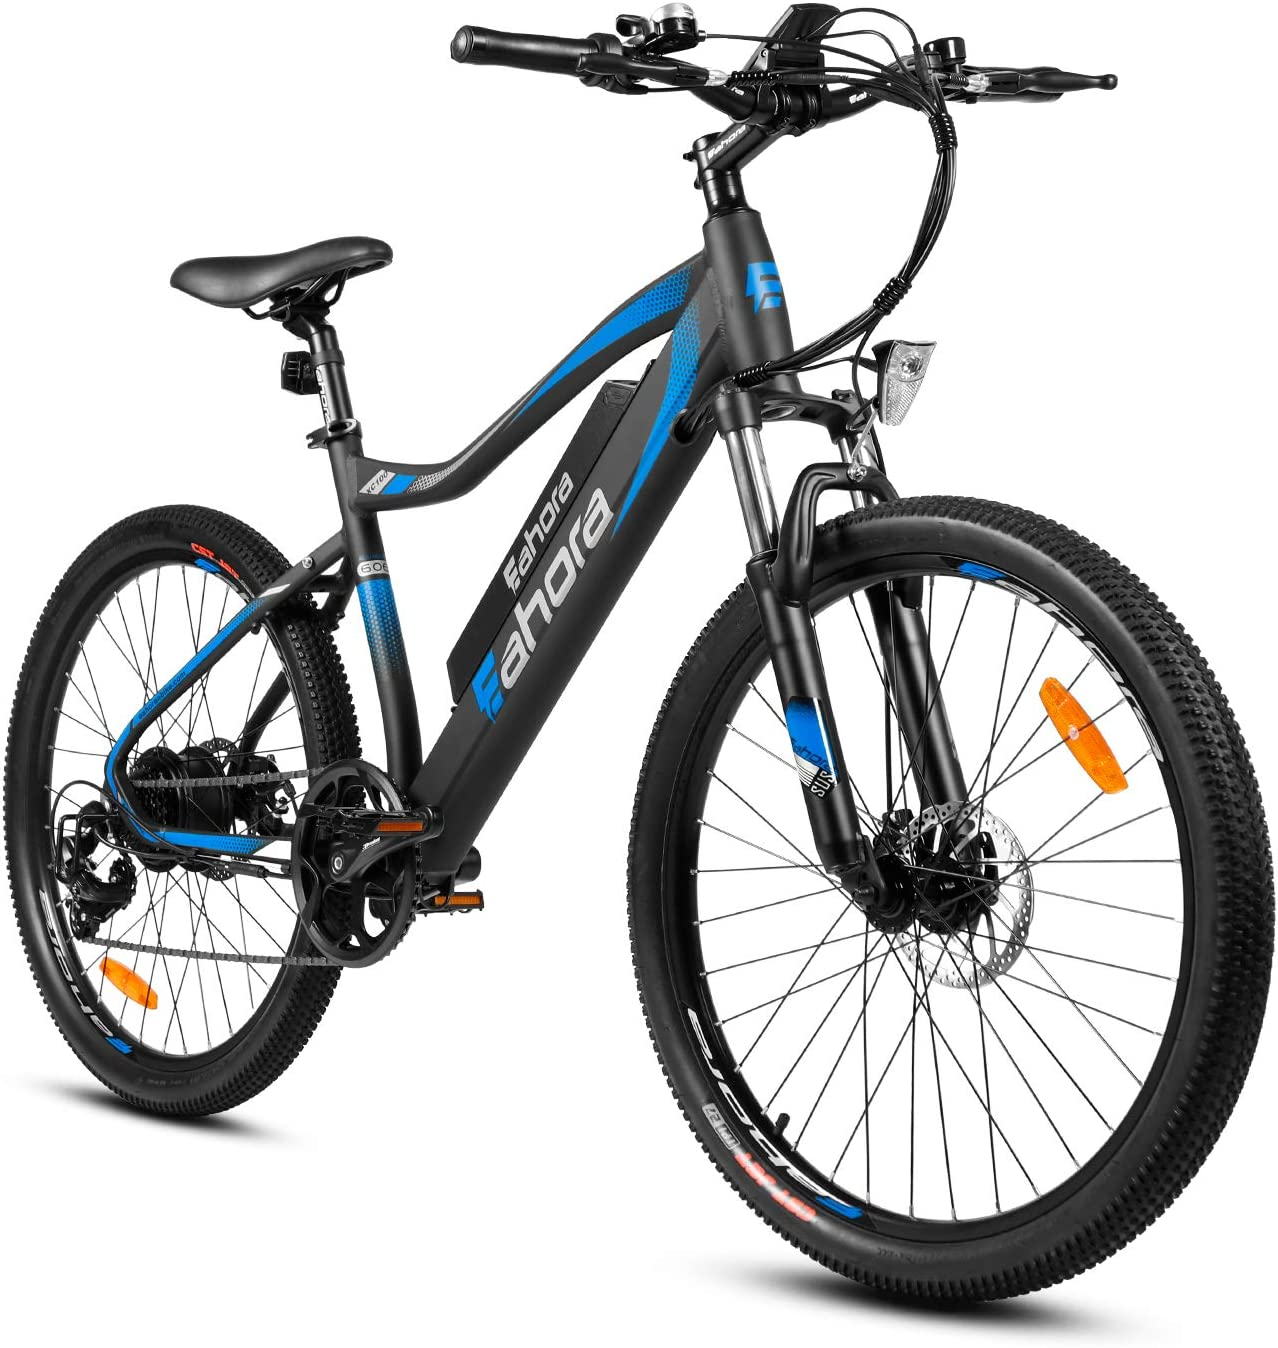 Eahora XC100 26 Inch Electric Mountain Bicycle 7